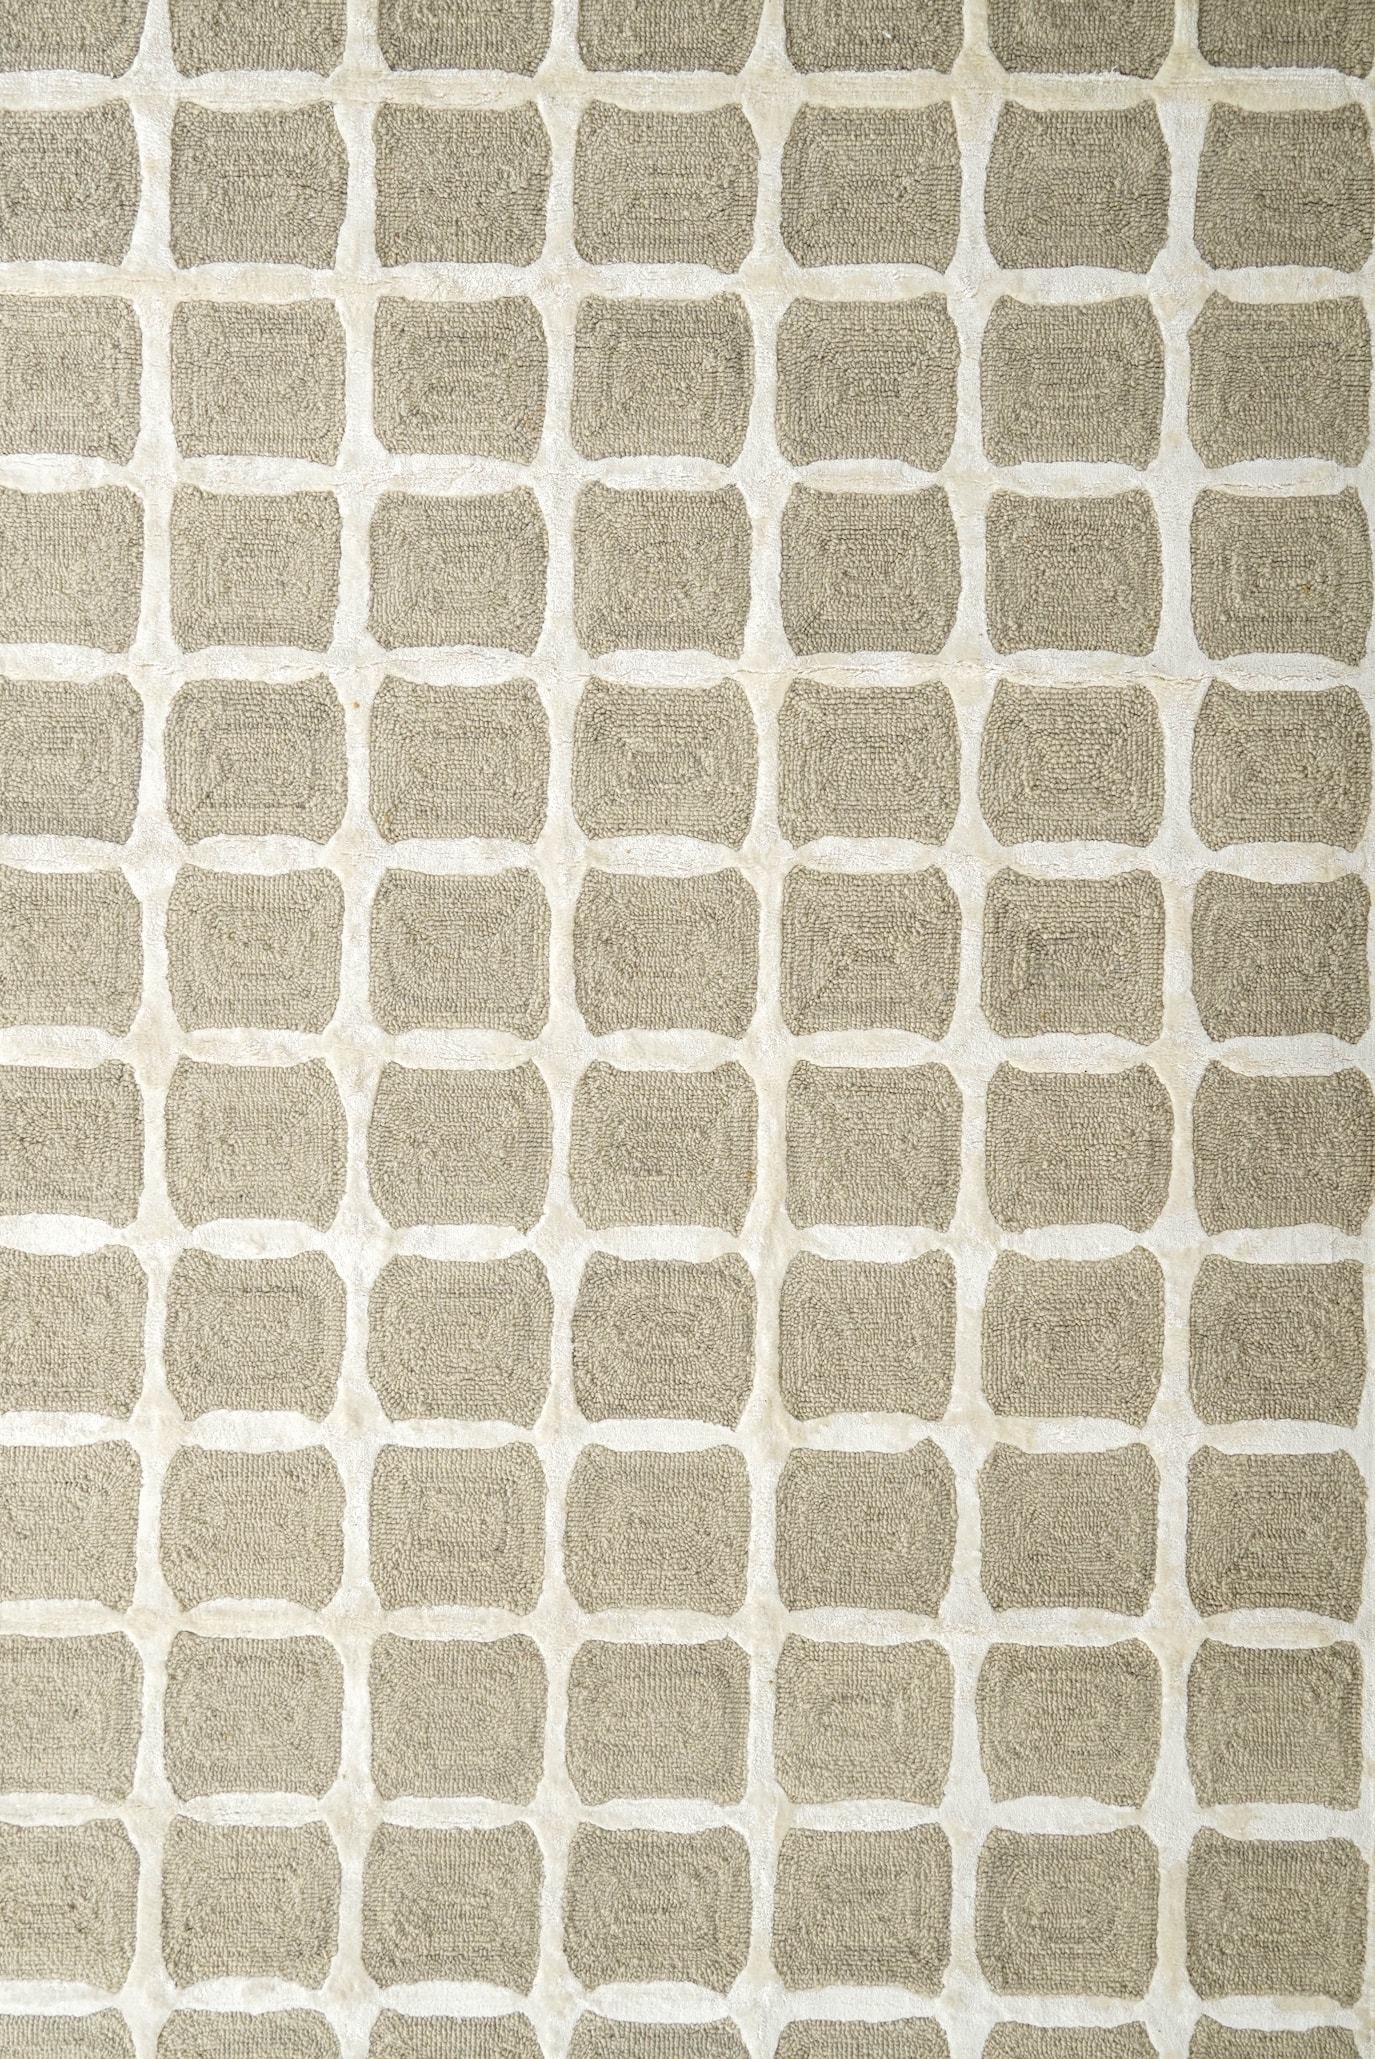 Lulu Hand Tufted Rug by House of Rugs - Home Artisan